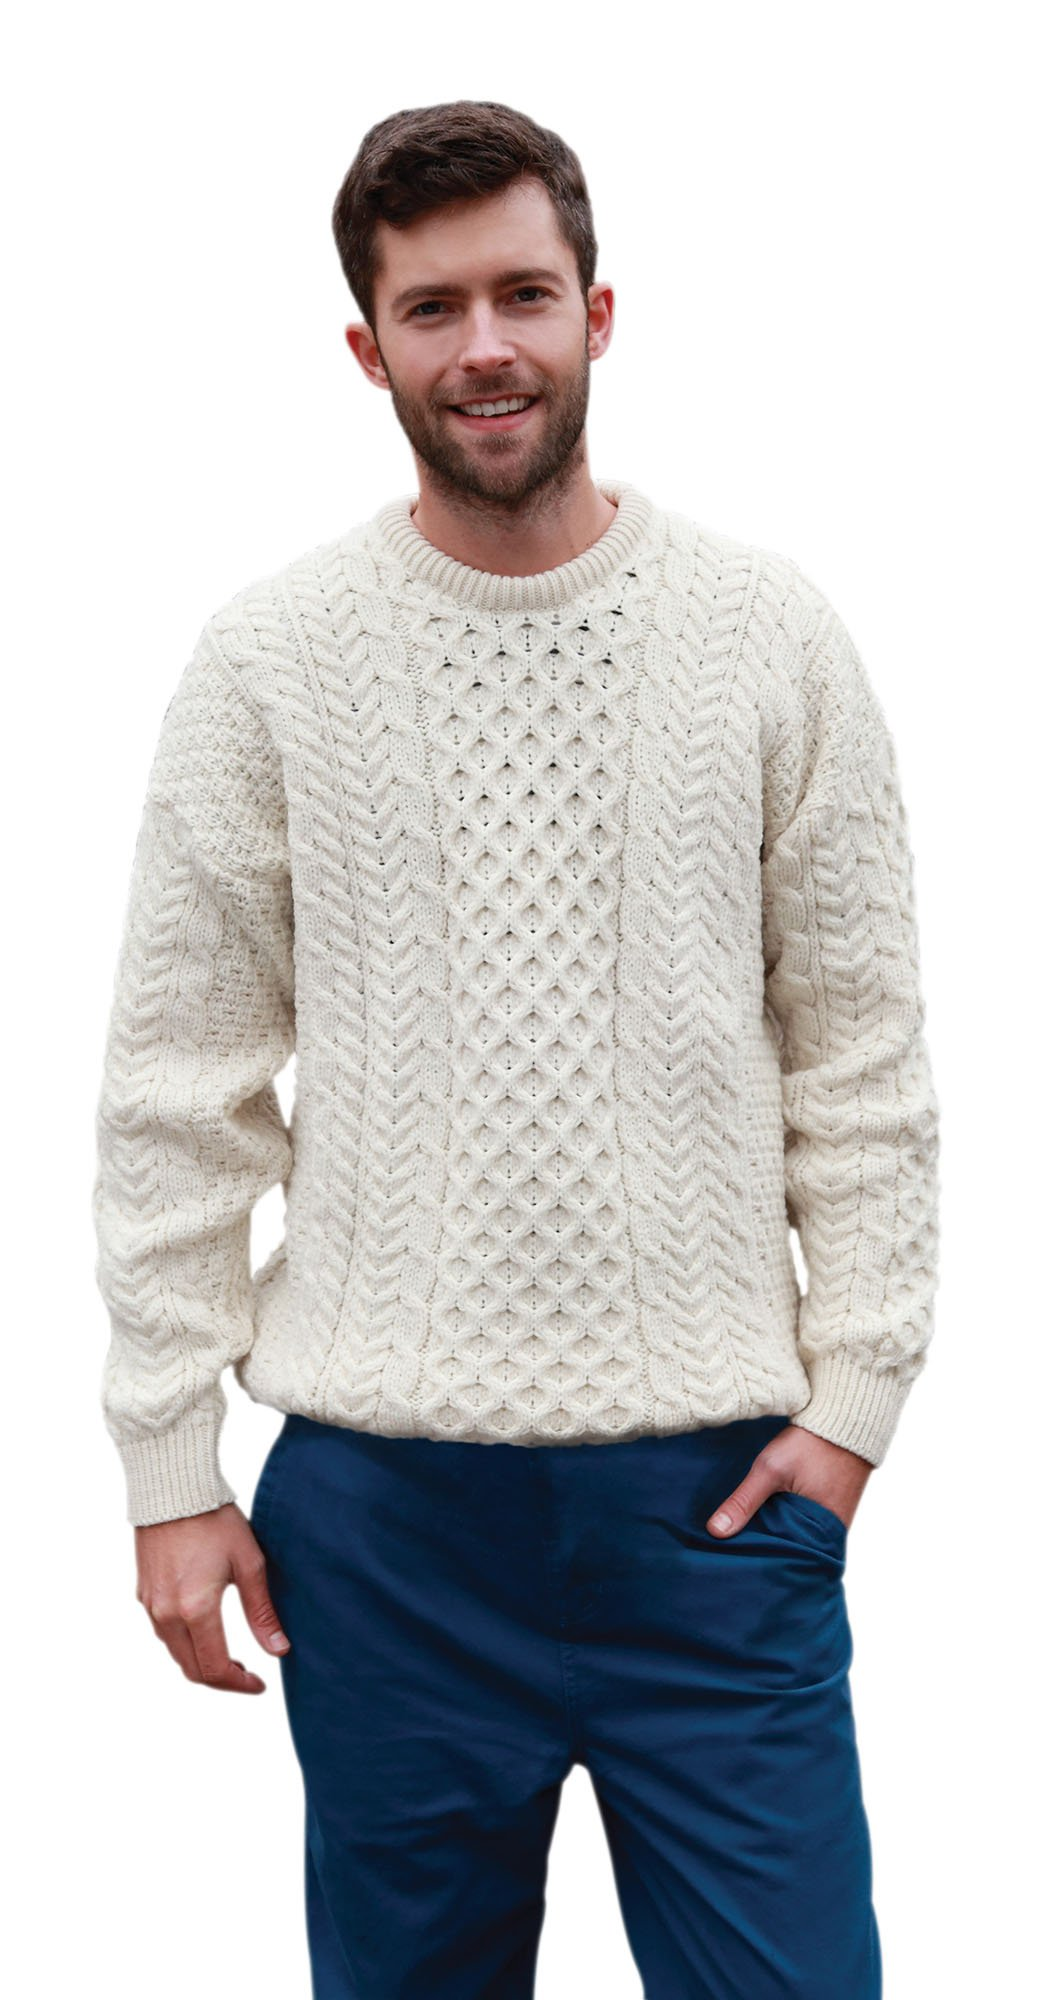 Traditional Irish Aran Merino Wool Sweater White Large - Fast delivery from Ireland